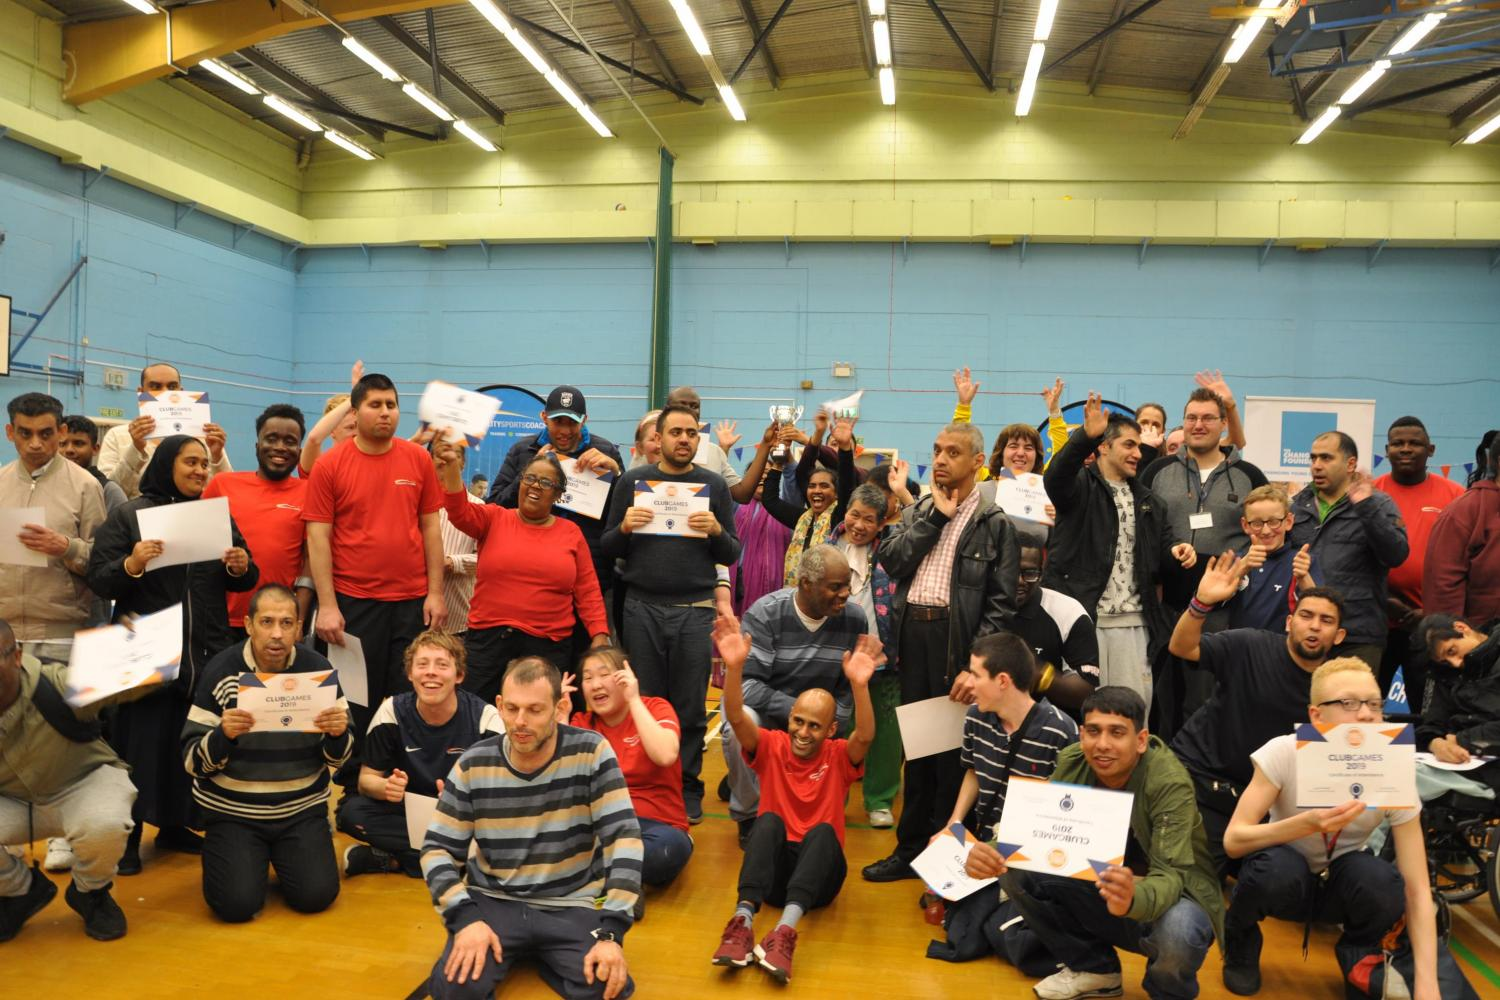 Disability Sports Coach East ClubGames 2019 - celebration event